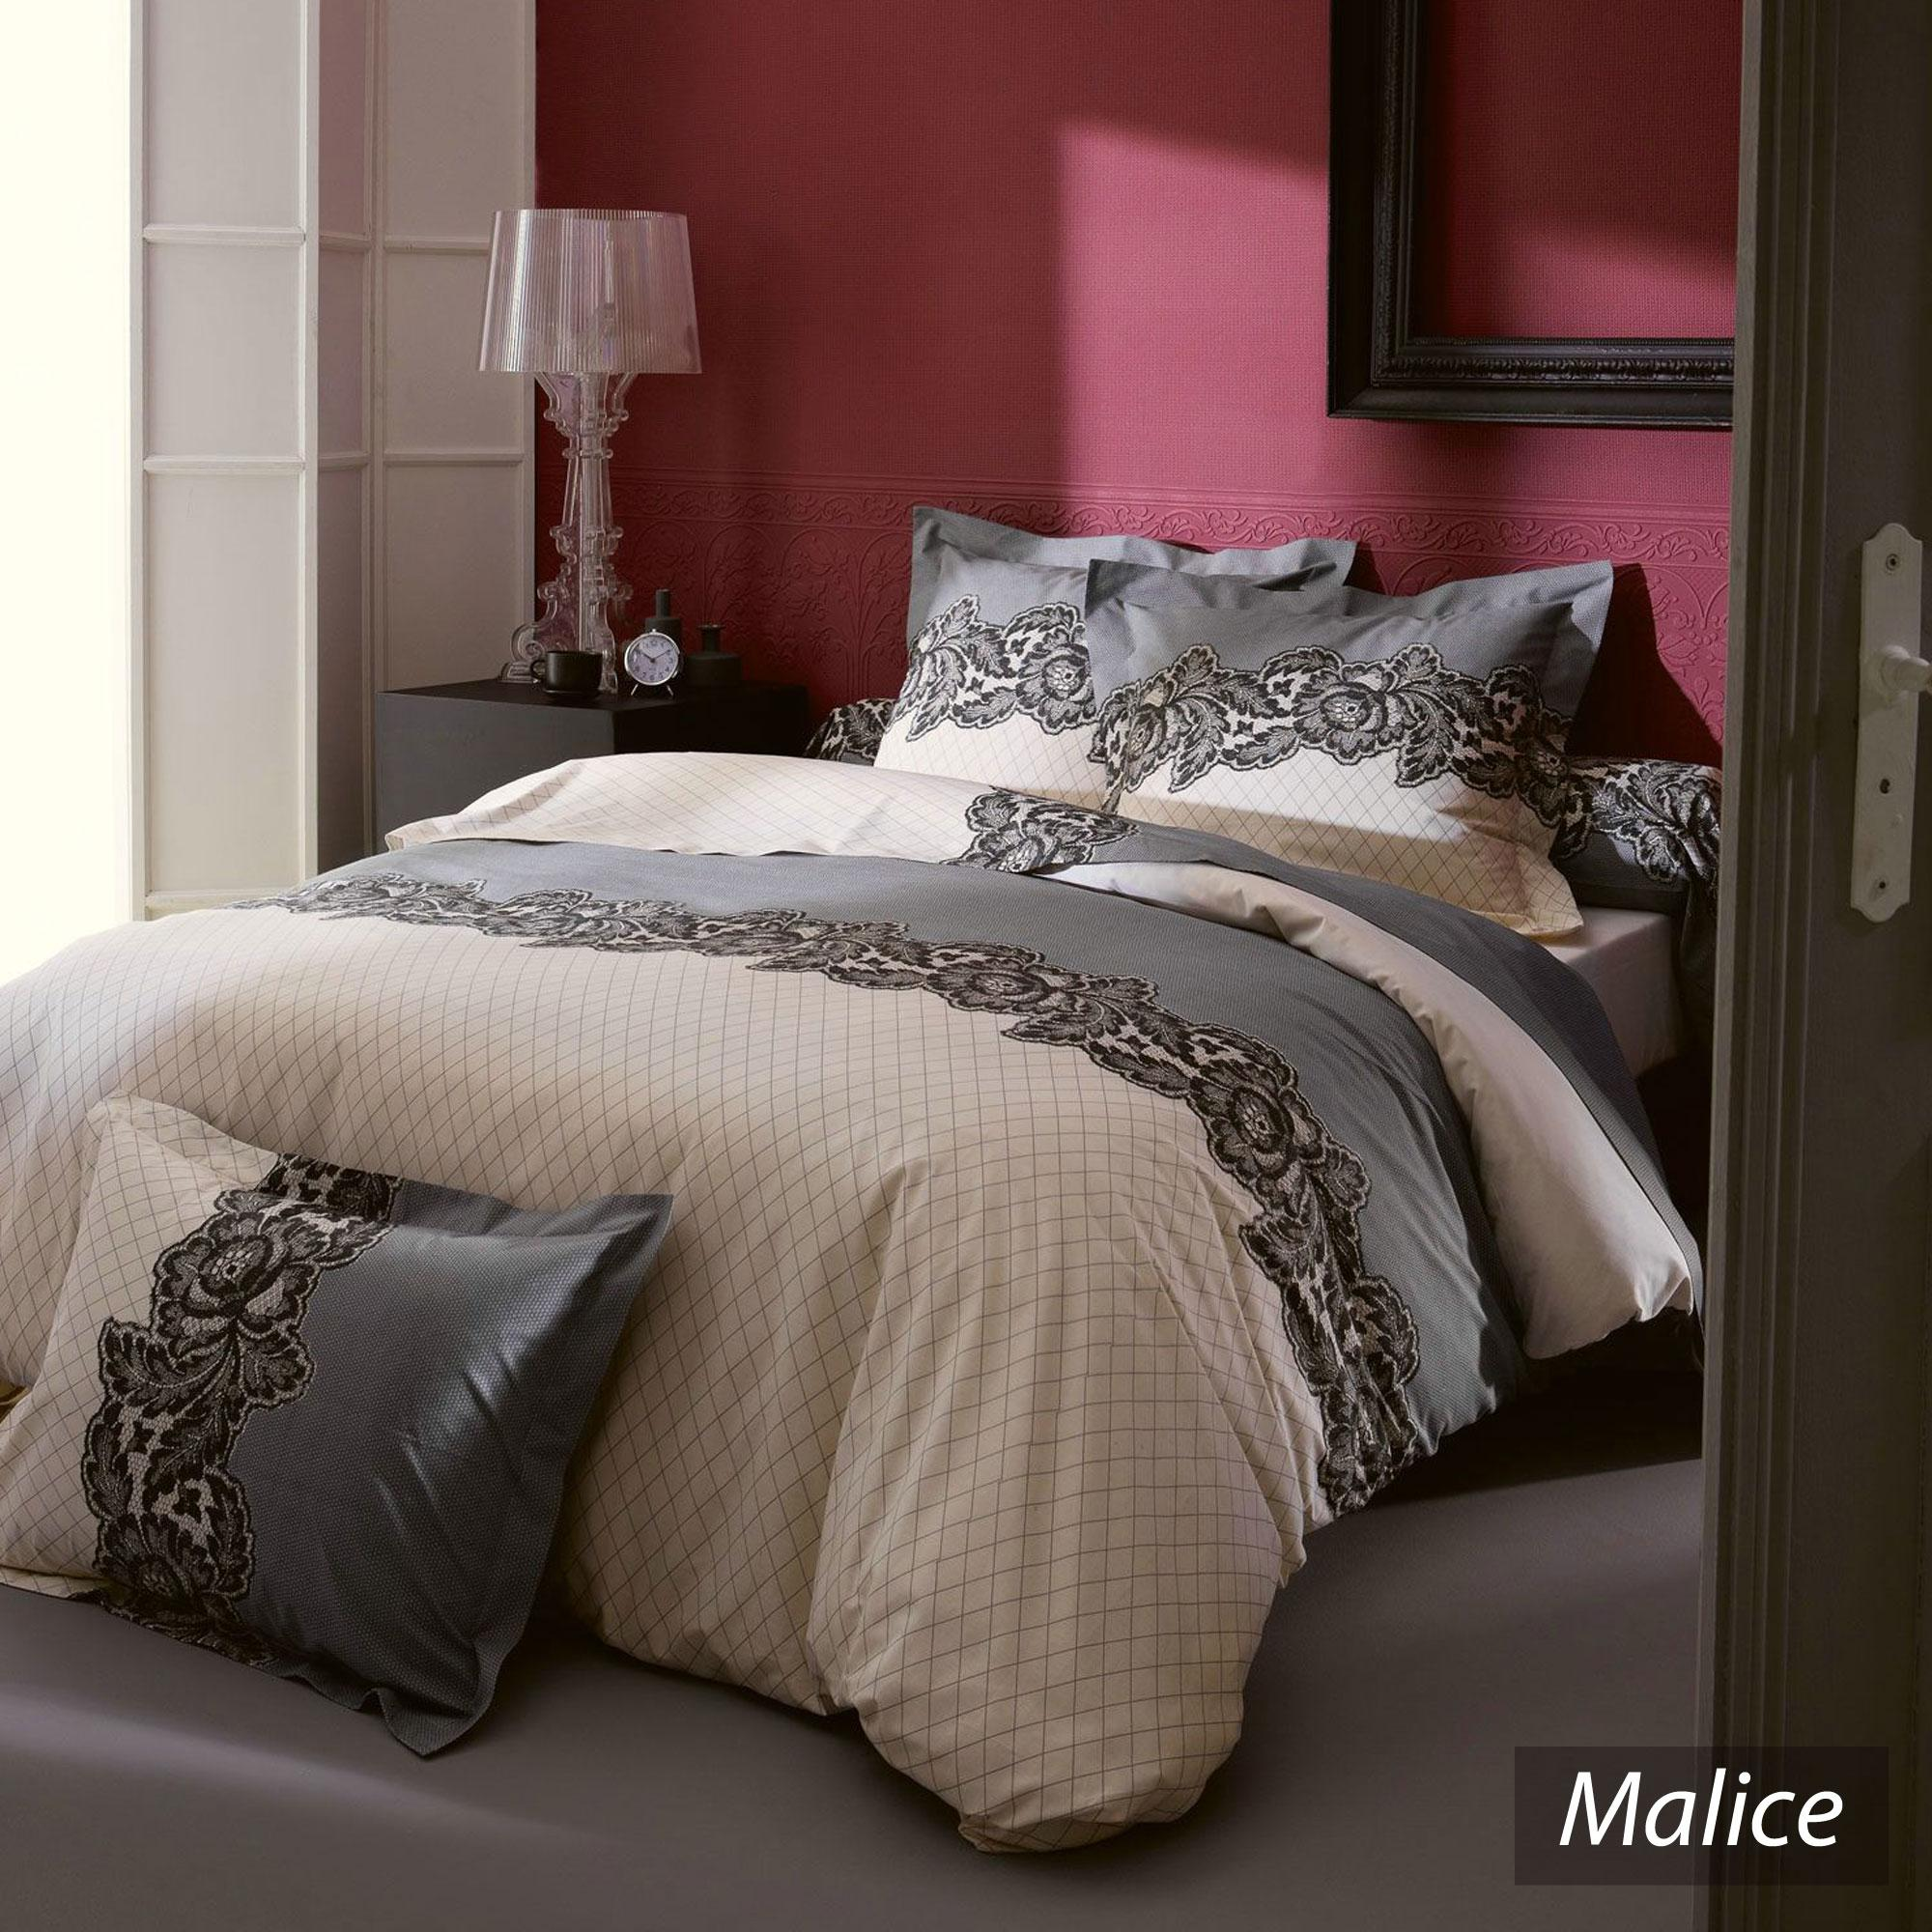 housse de couette 200x200 cm malice linnea vente de. Black Bedroom Furniture Sets. Home Design Ideas